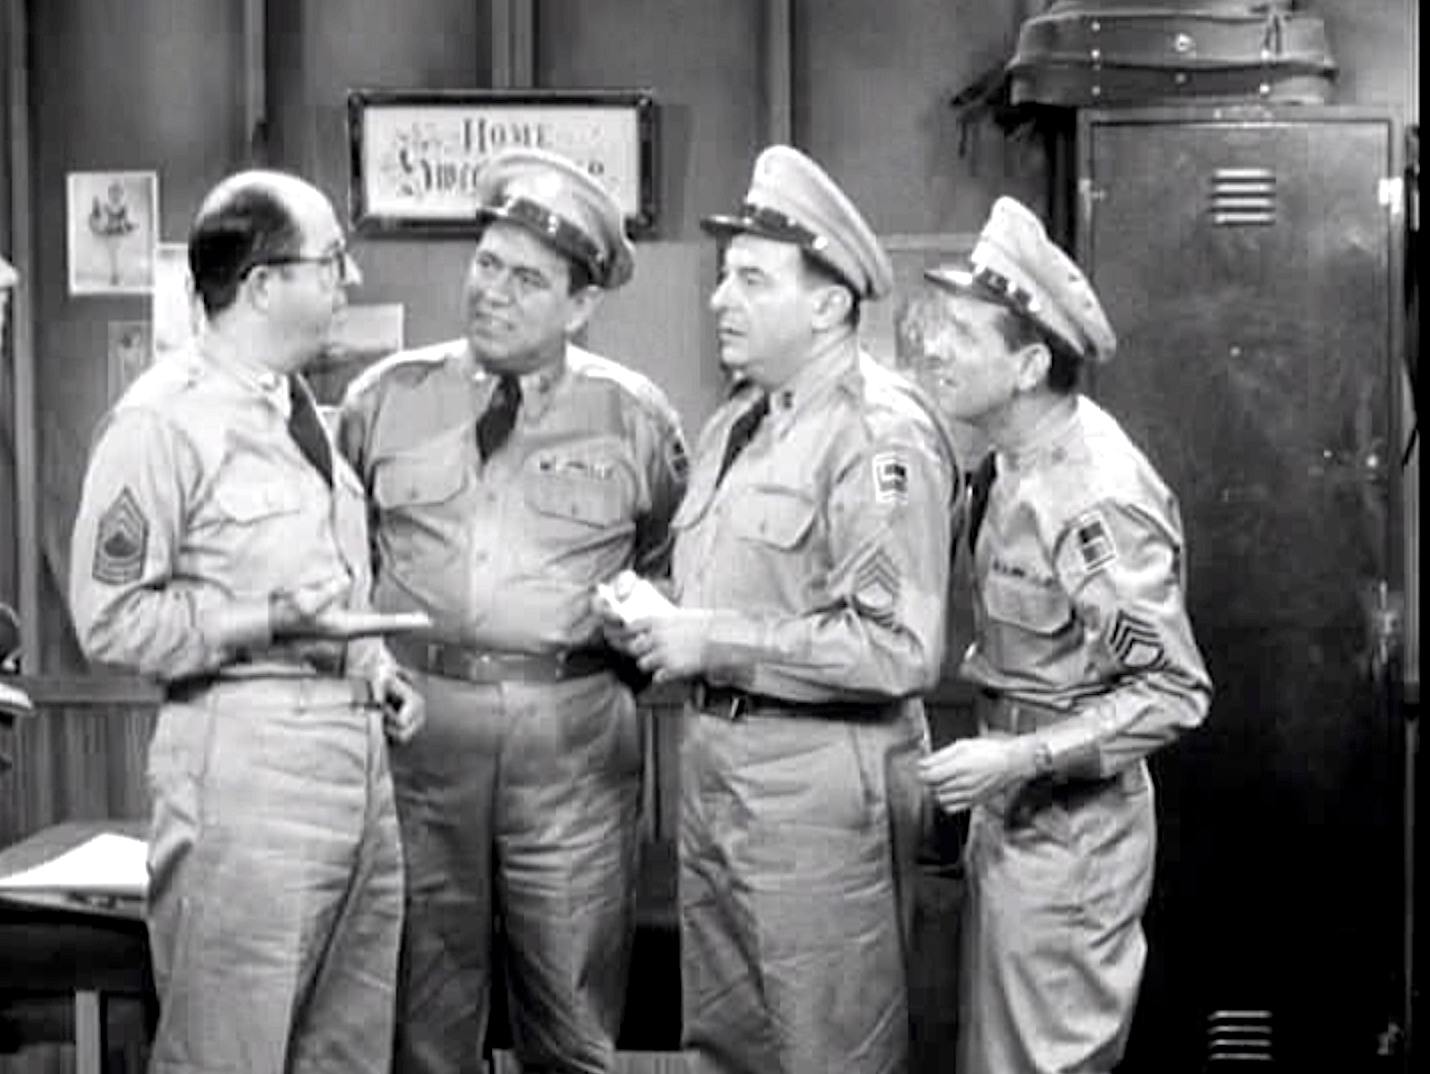 The Phil Silvers Show : SE 01 Ep 21 : Bilko's Rest Cure